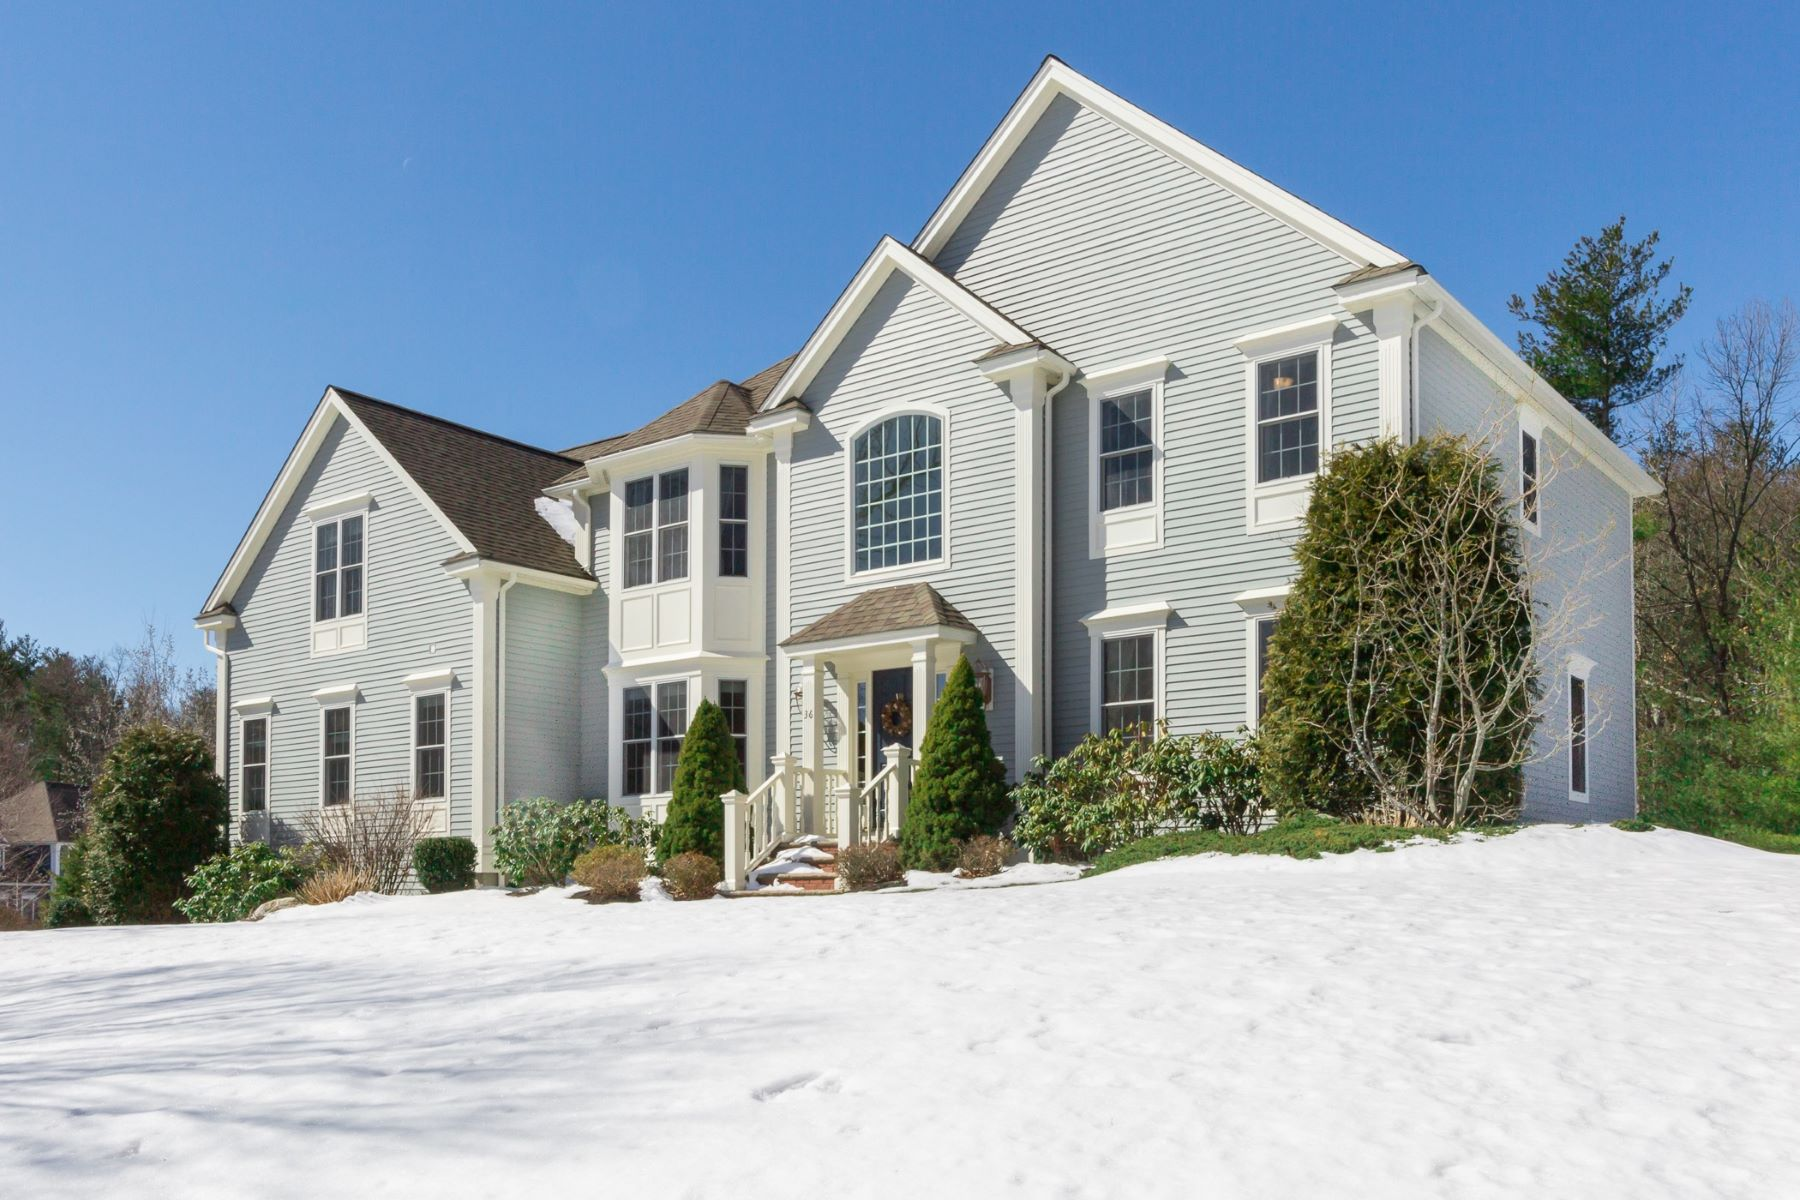 Single Family Home for Sale at Pristine and Sunny Colonial 36 Robinson Drive Bedford, Massachusetts 01730 United States